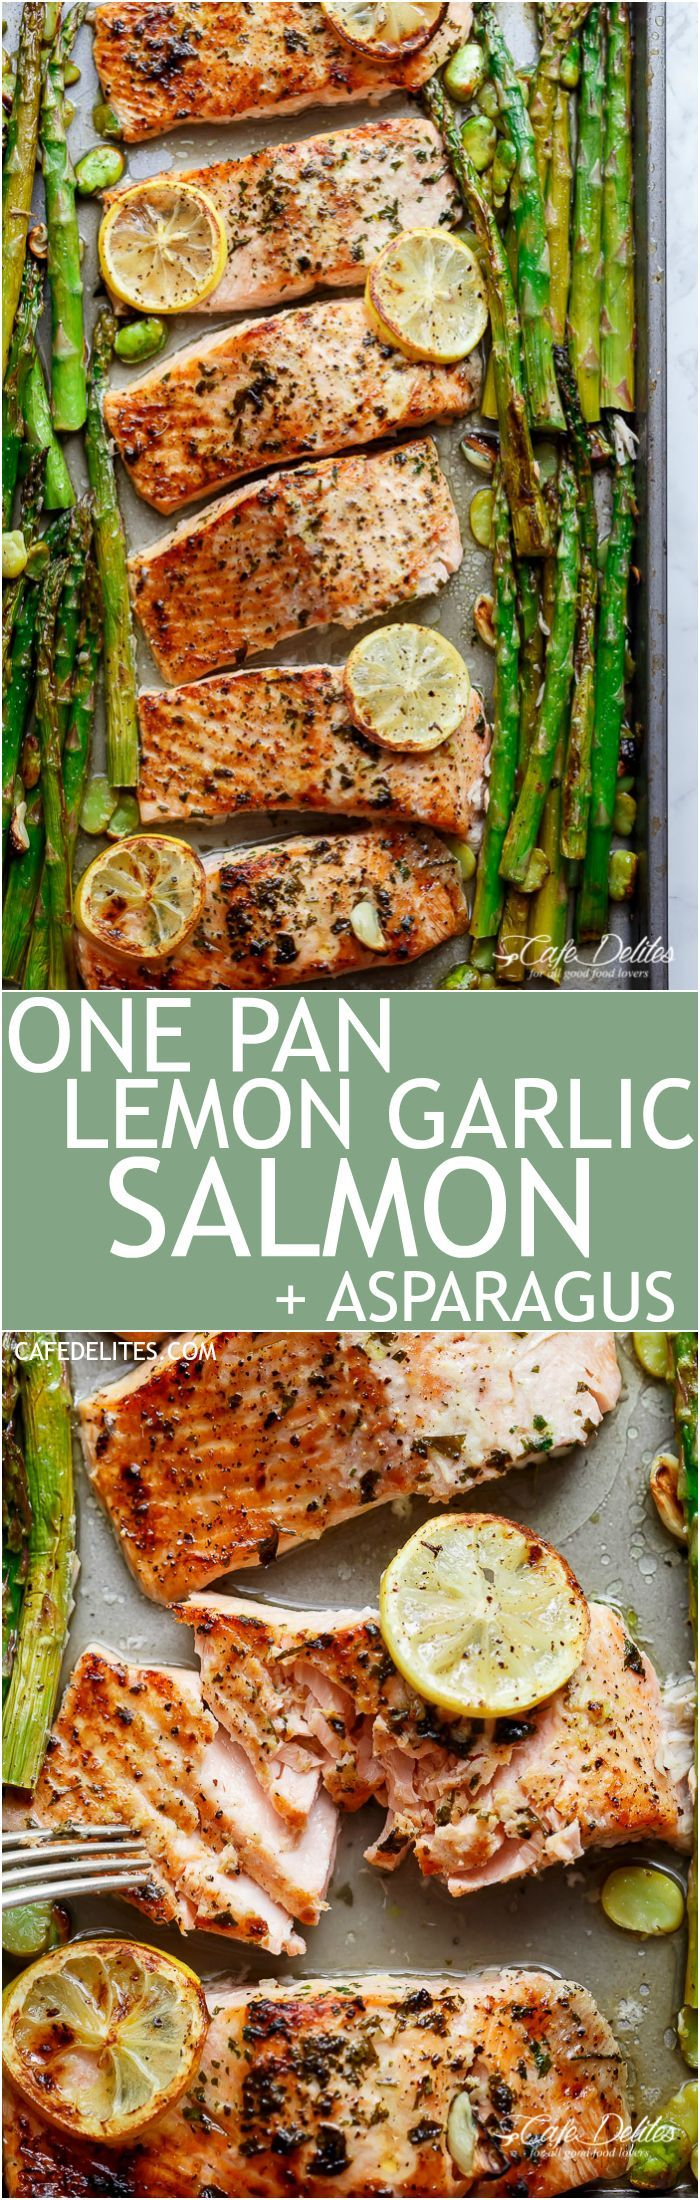 nice Lemon, garlic and parsley are infused in One Pan Lemon Garlic Baked Salmon + Asp...